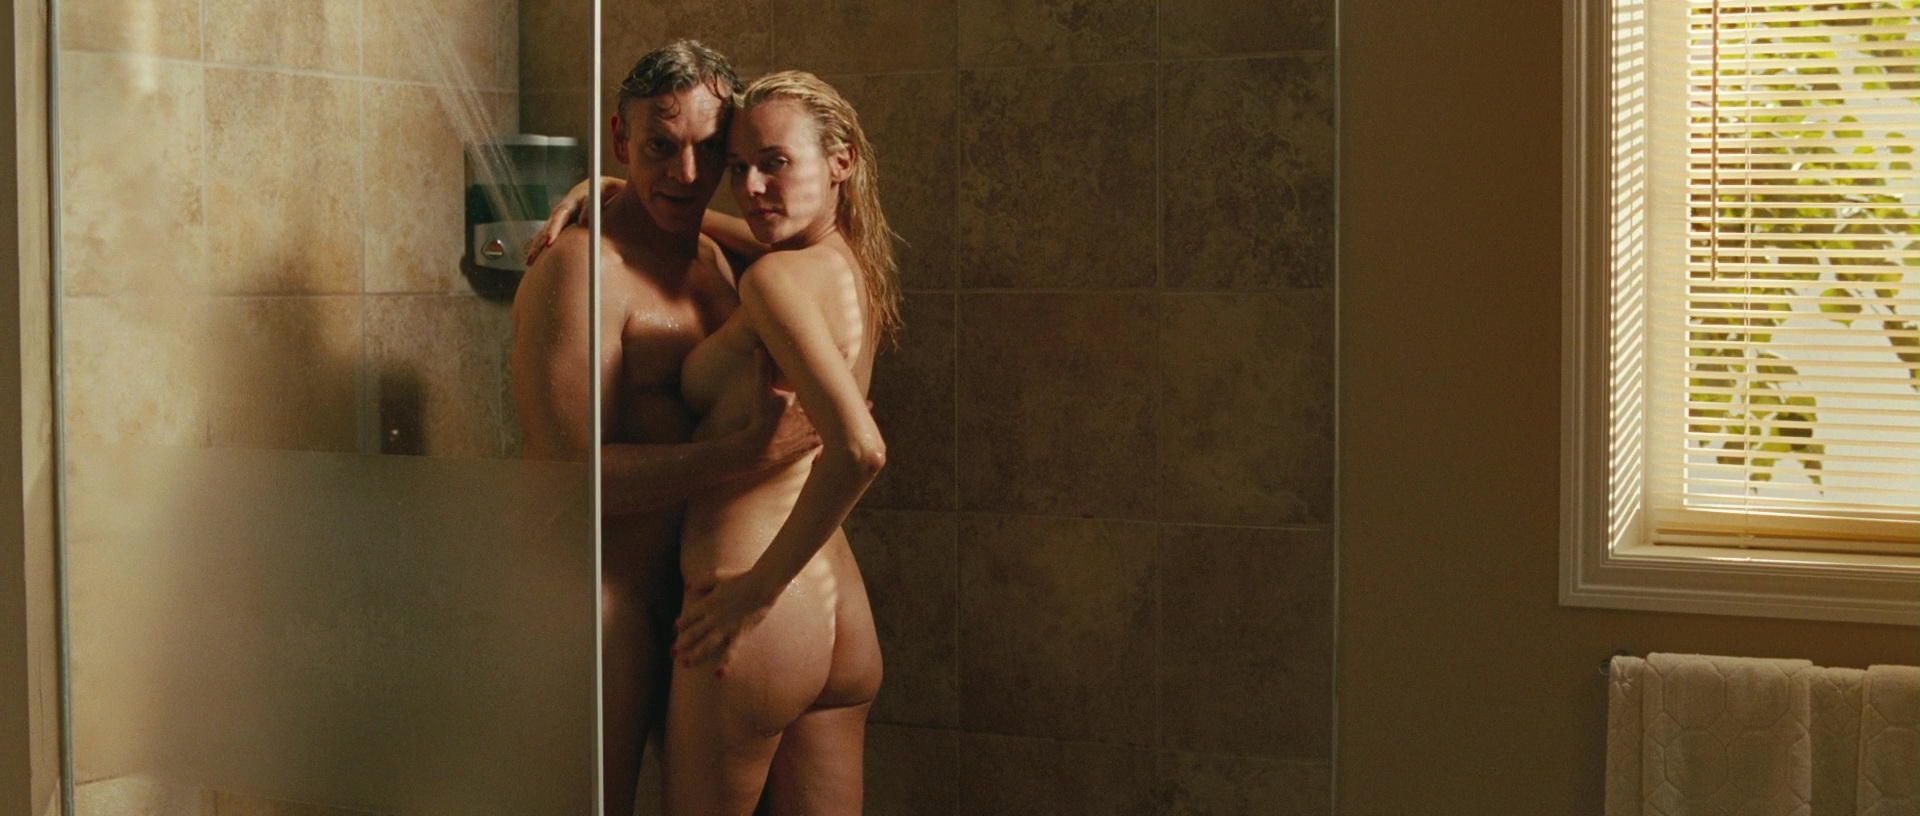 Diane Kruger – The Age of Ignorance (2007) HD 1080p